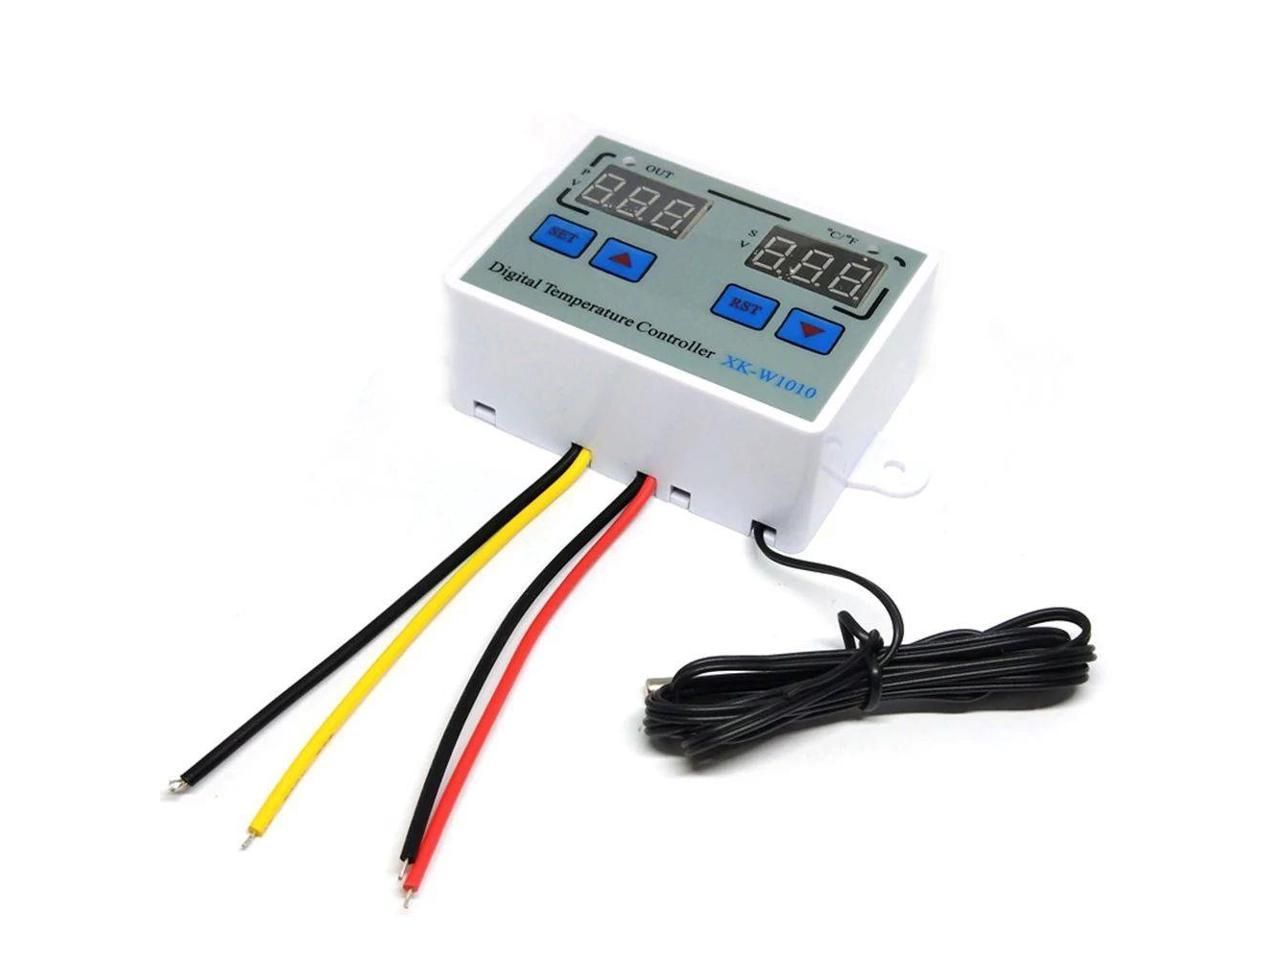 Facibom 10A AC110-220V Digital LED Temperature Controller XH-W3001 for Incubator Cooling Heating Switch Thermostat NTC Sensor